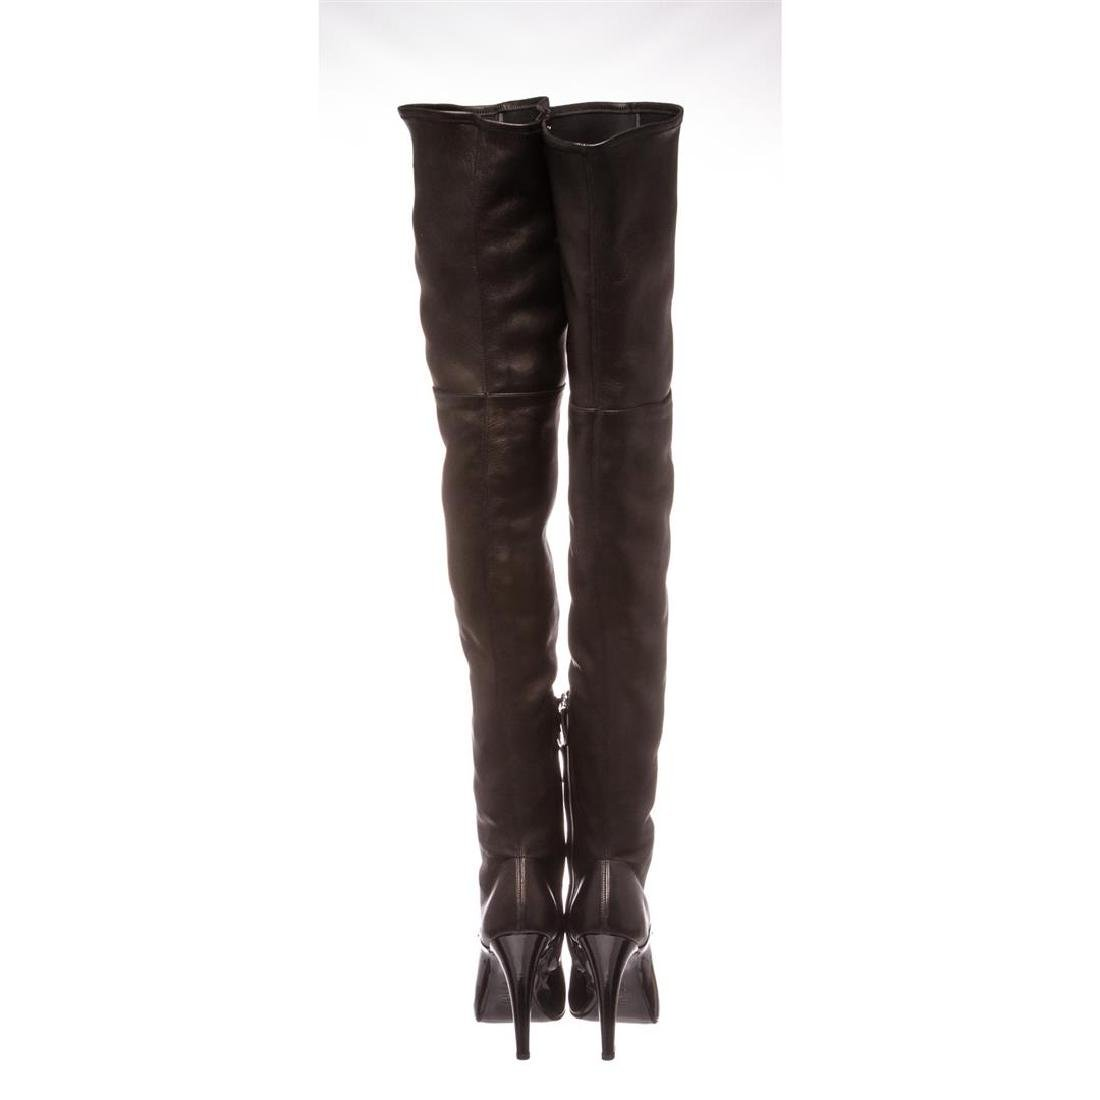 Chanel Black Leather Thigh-High Pearl Heel Boots Heels - 4